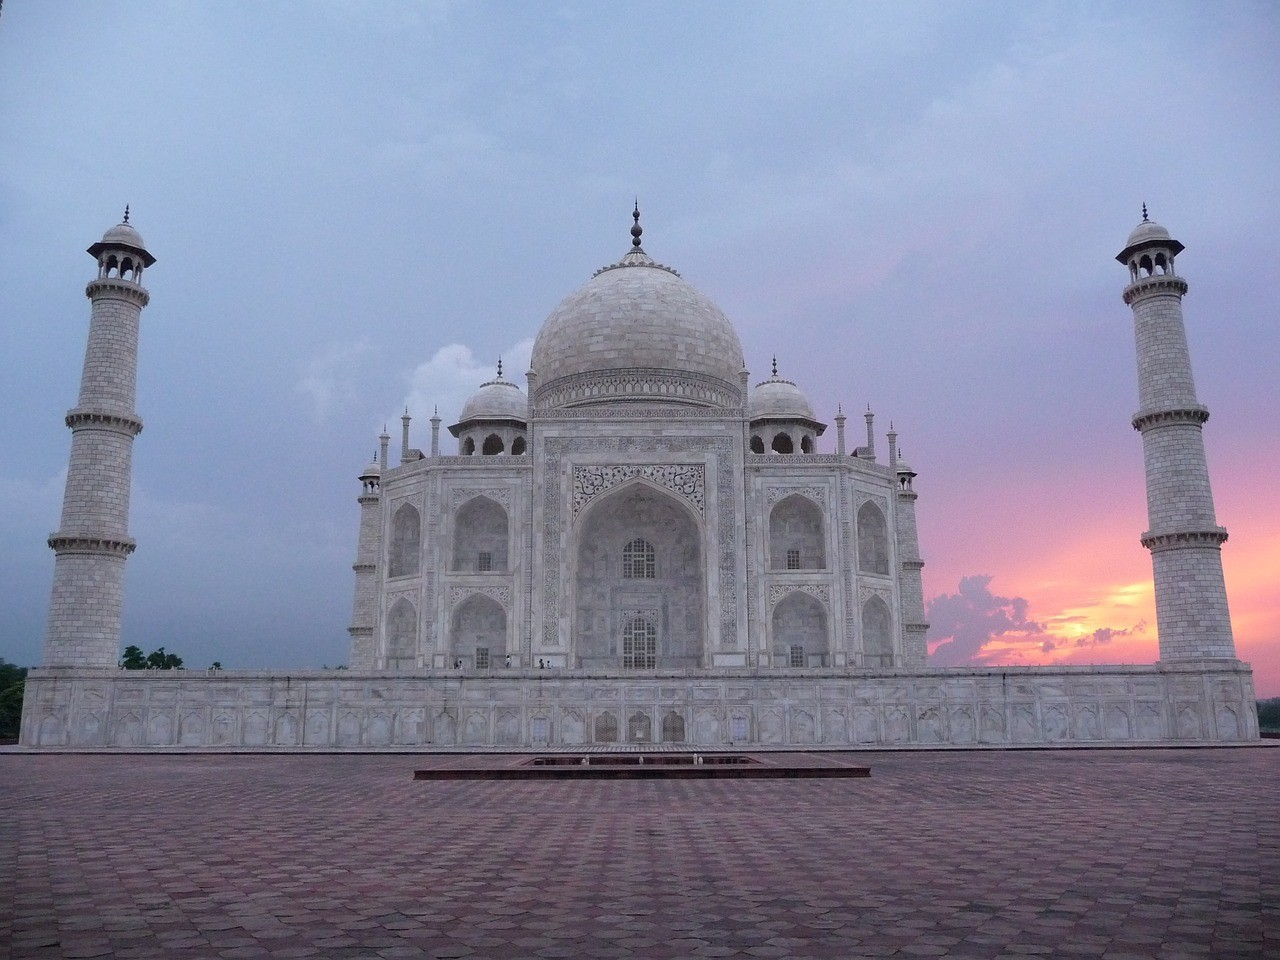 Delhi to Agra: How to Make a Day Trip to the Taj Mahal from Delhi